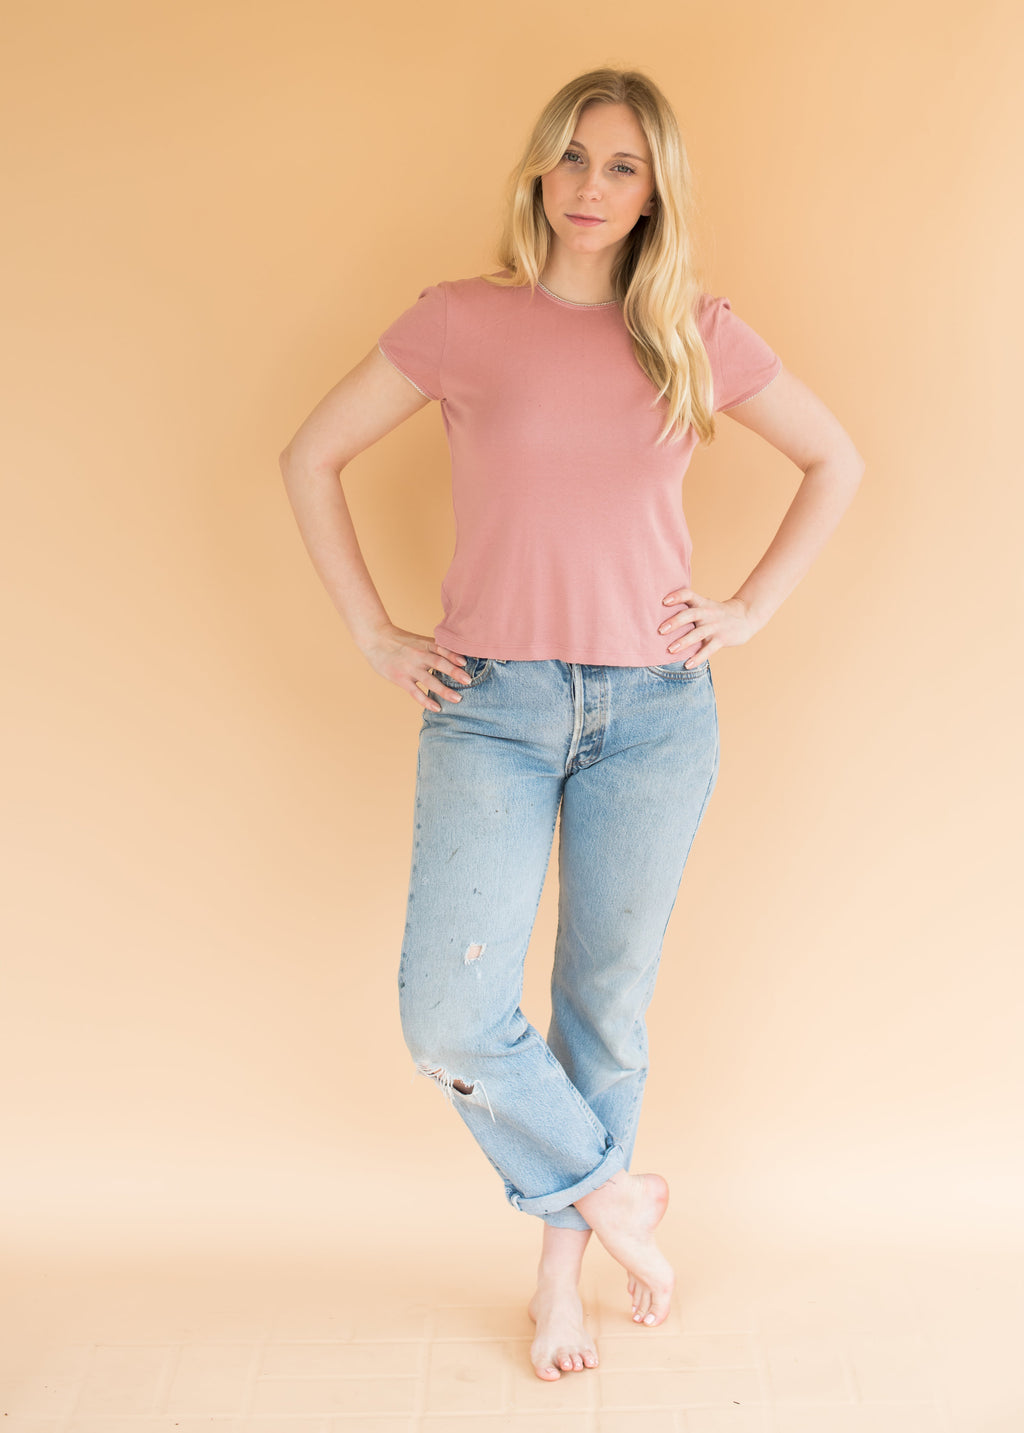 Pointelle Baby Tee - Dusty Rose - Women's Short Sleeve Rose Top